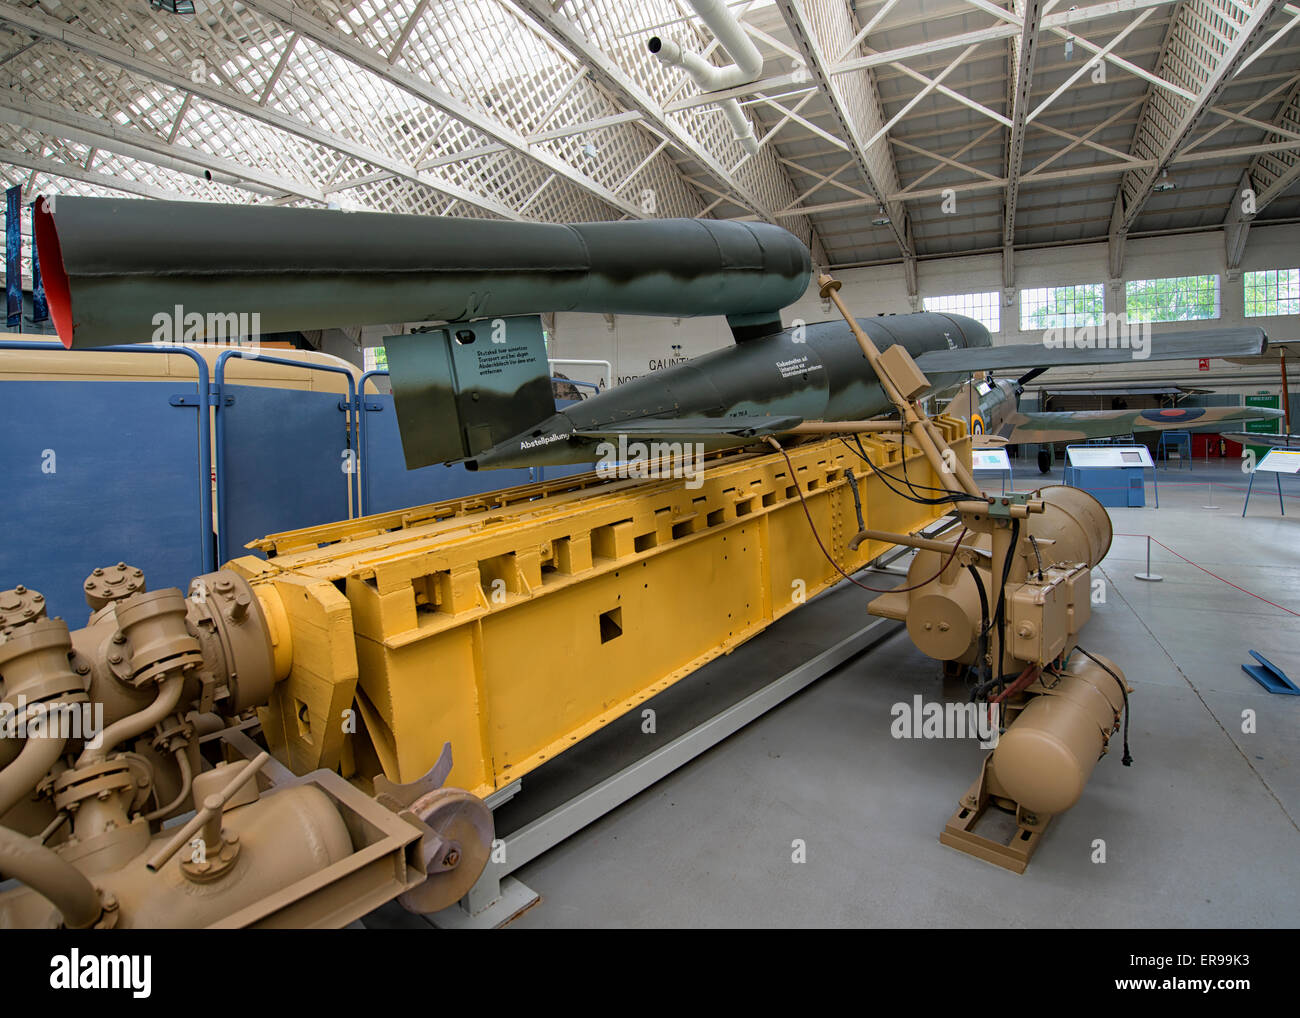 V-1 Flying Bomb at IWM Duxford, UK - Stock Image